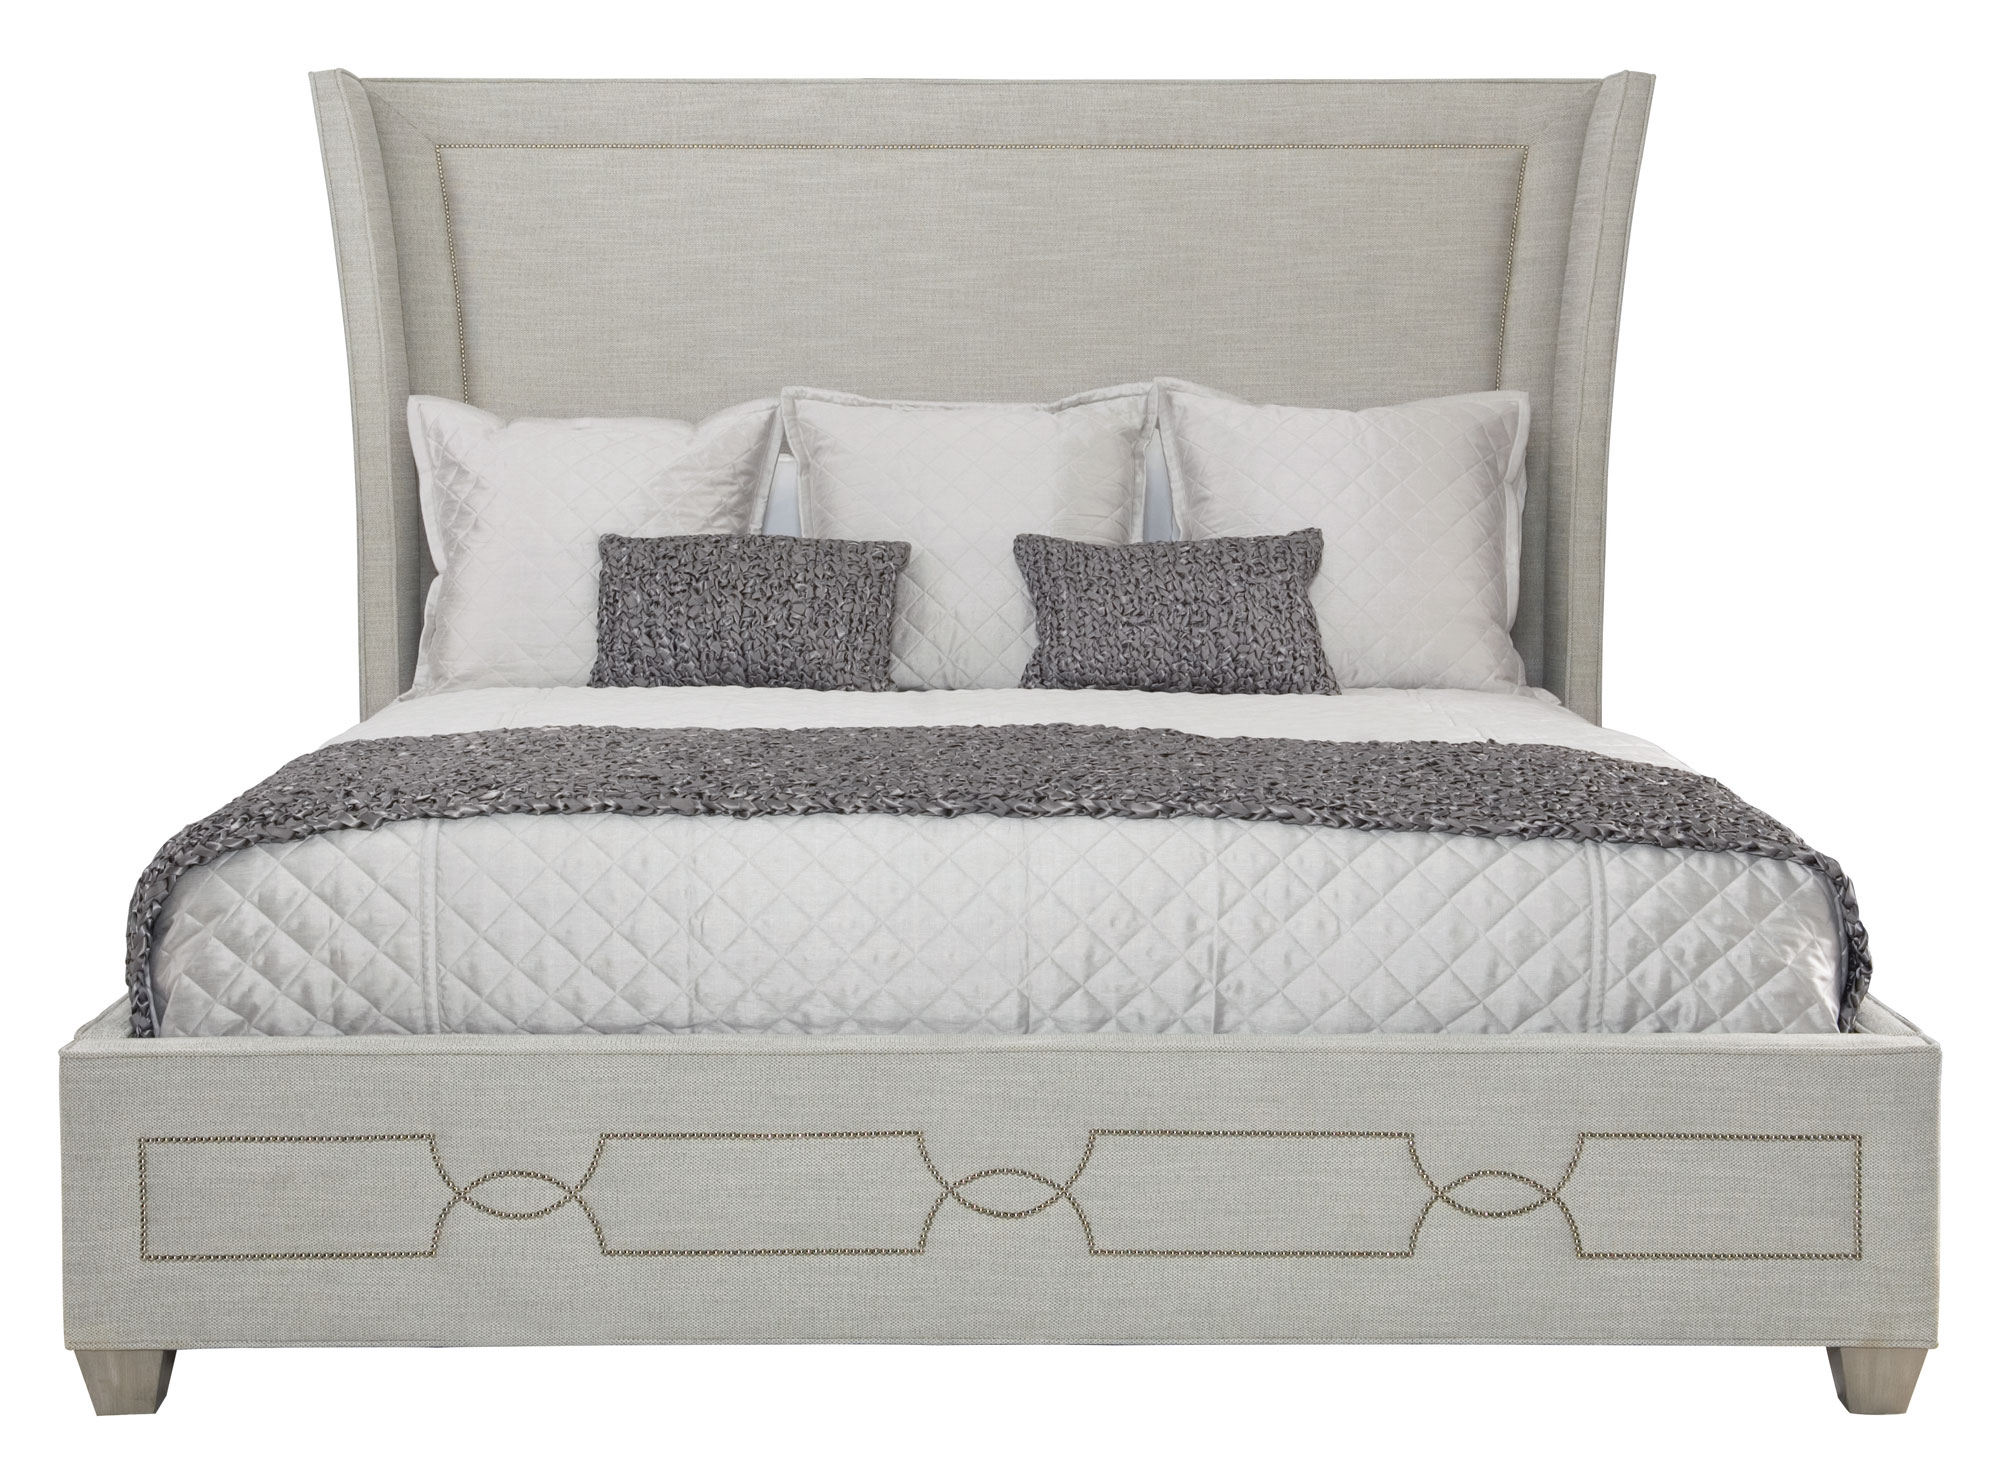 choice bed left products of evergreen upholstered huntley fabrics drive